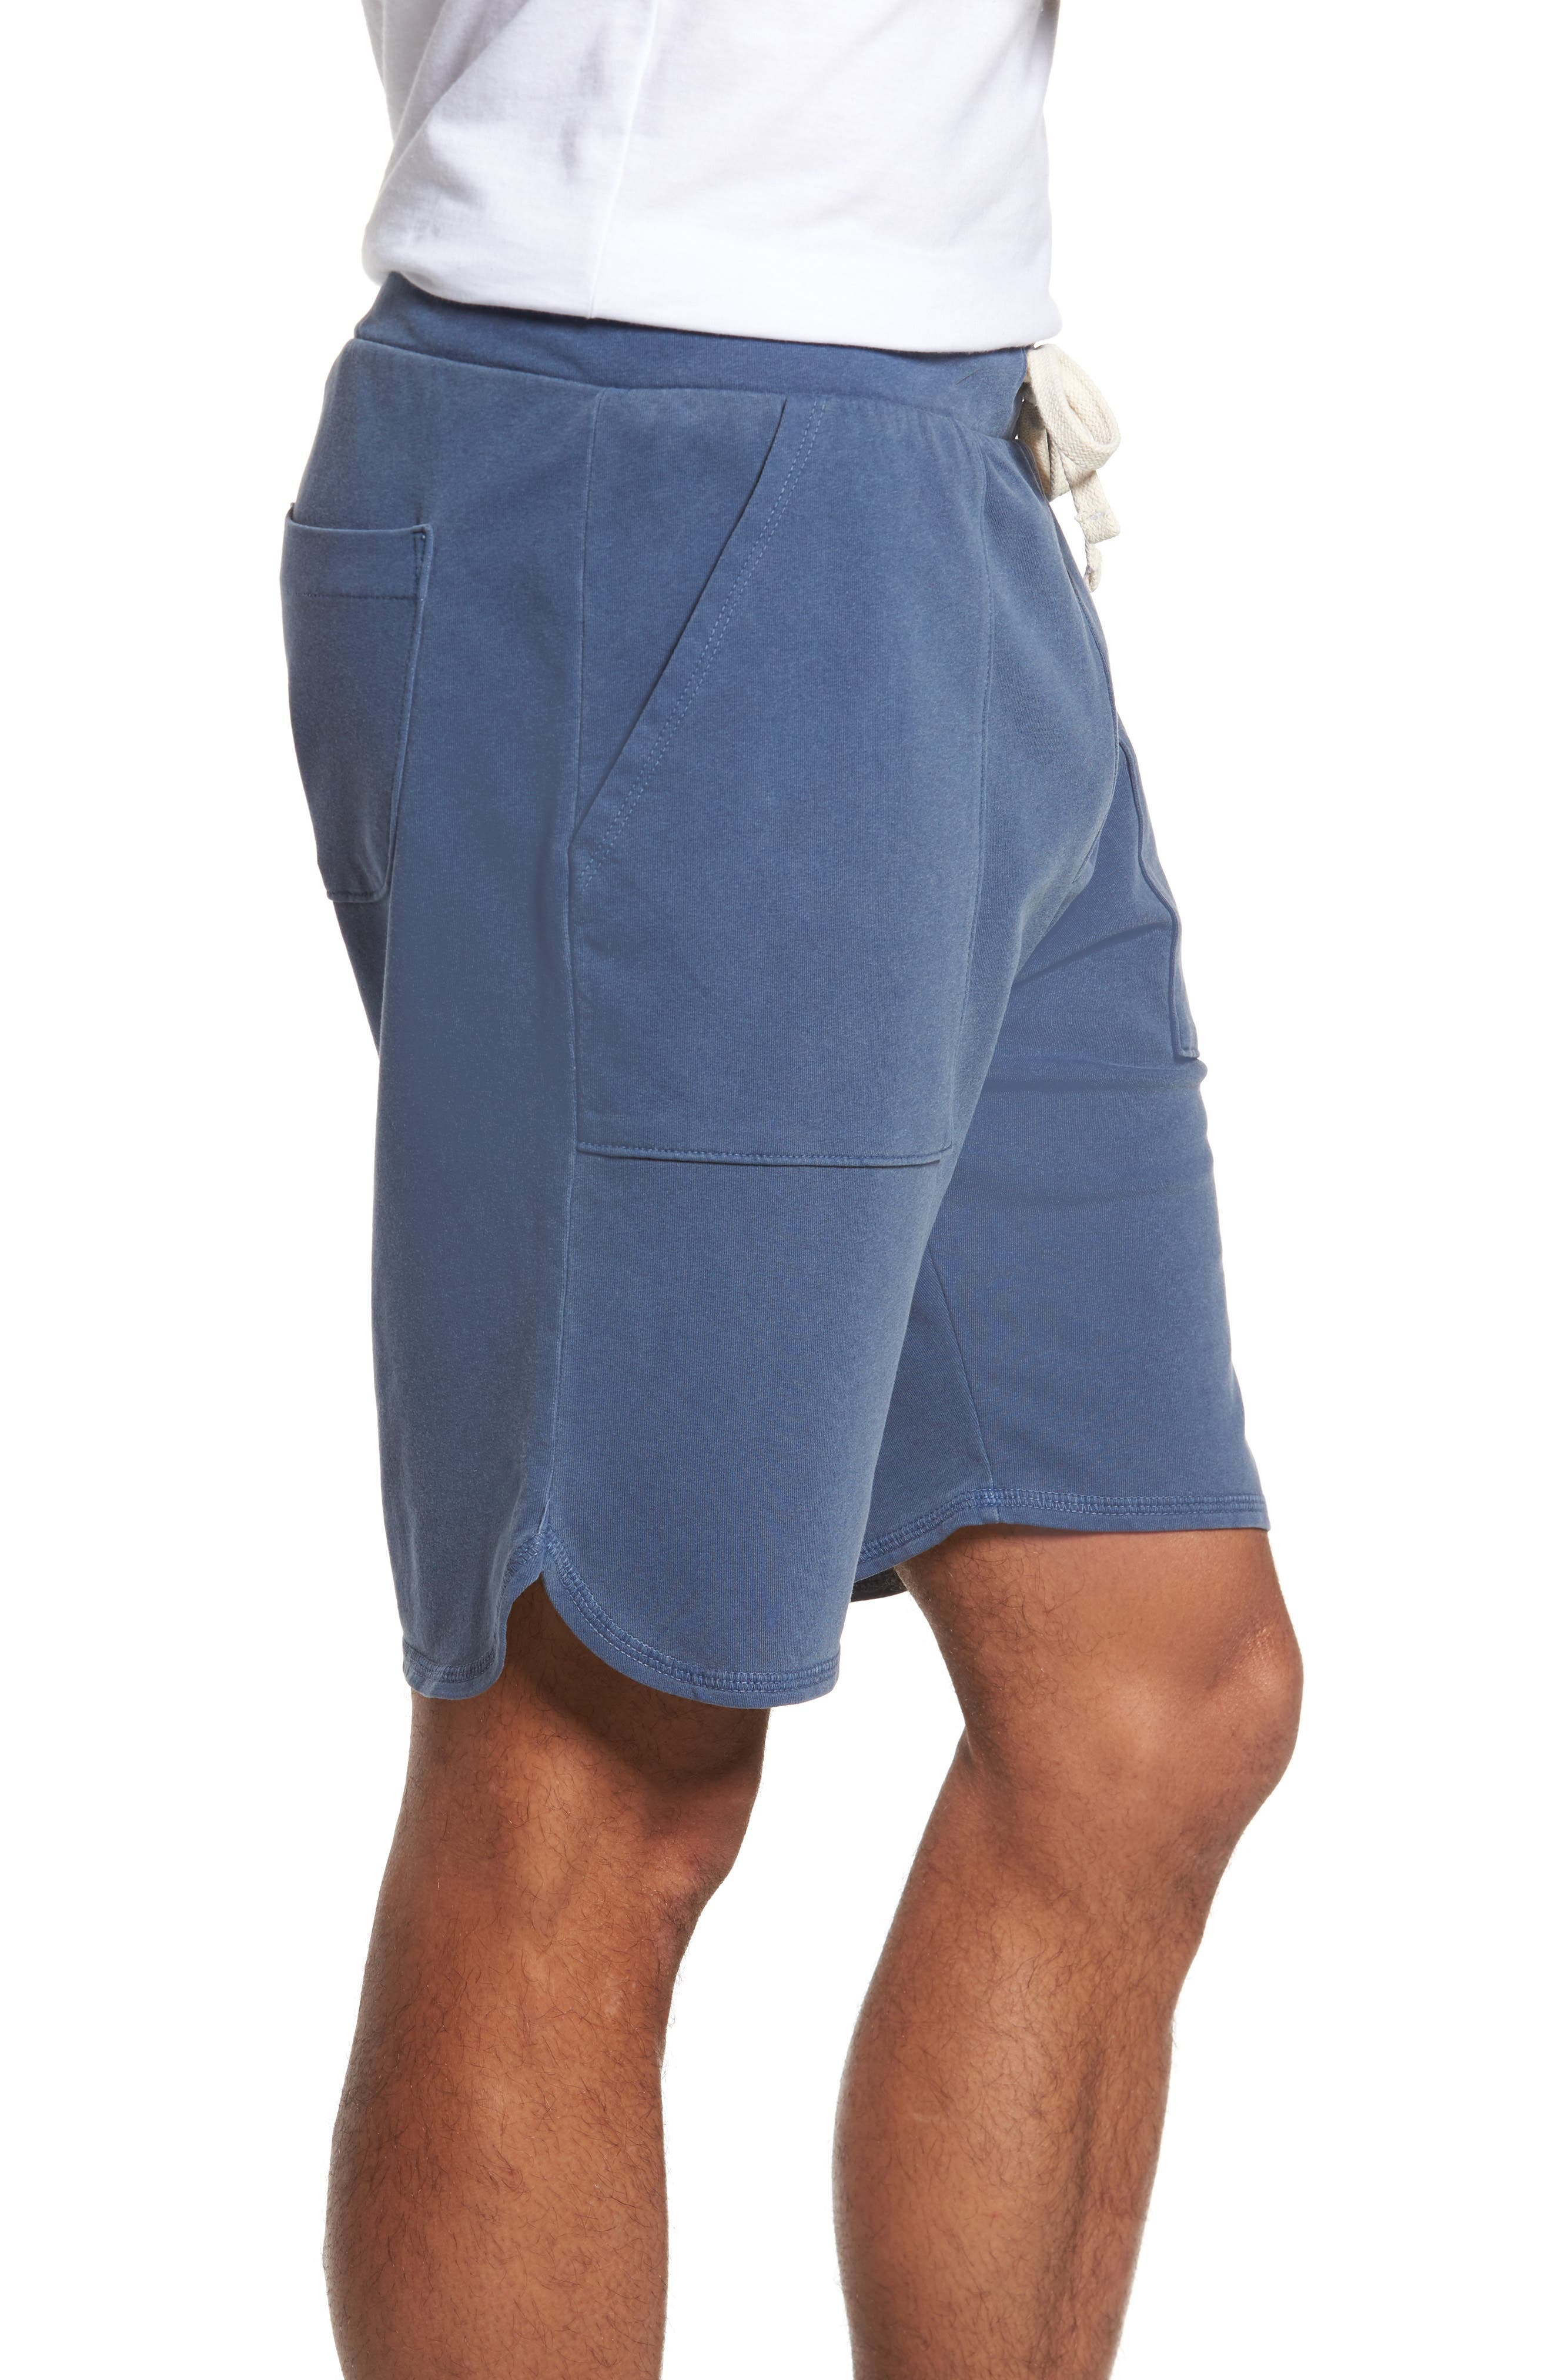 Terrycloth Scallop Shorts,                             Alternate thumbnail 3, color,                             Faded Navy